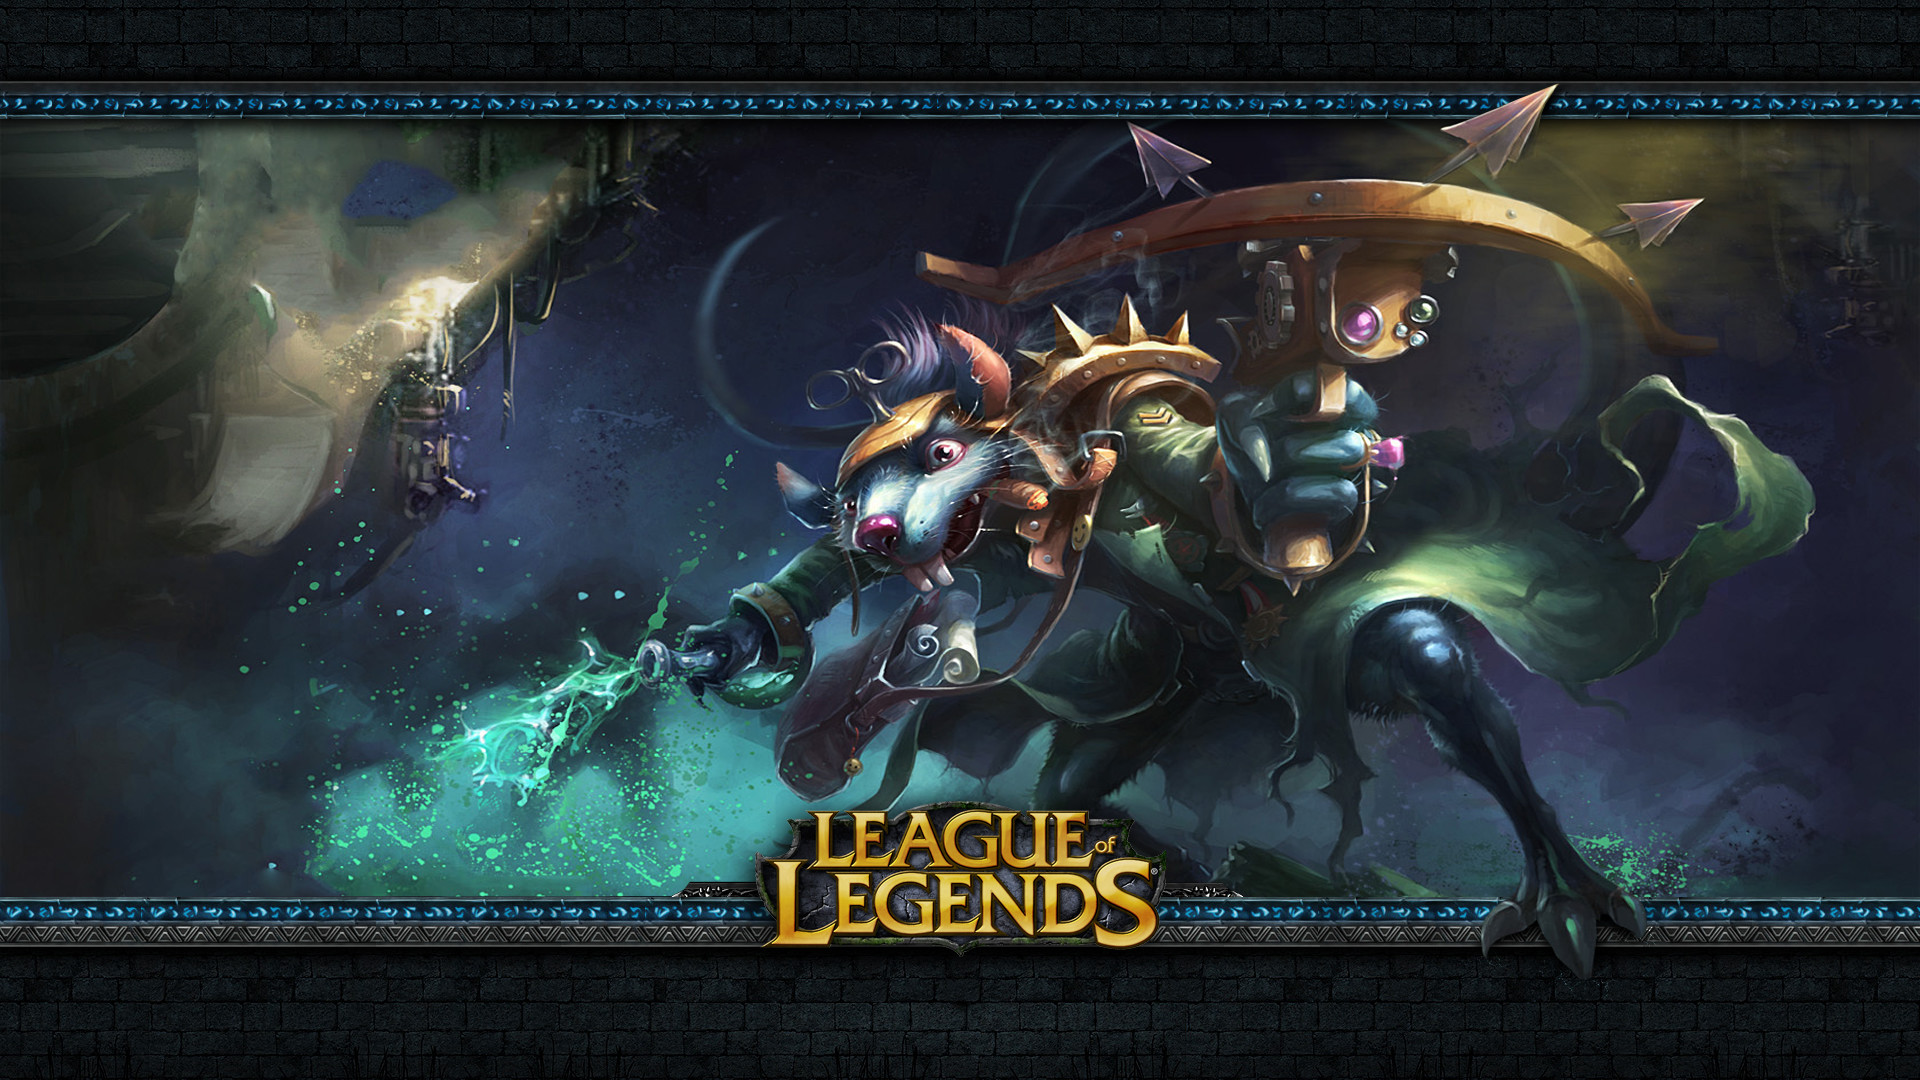 1920x1080 League of Legends Pictures